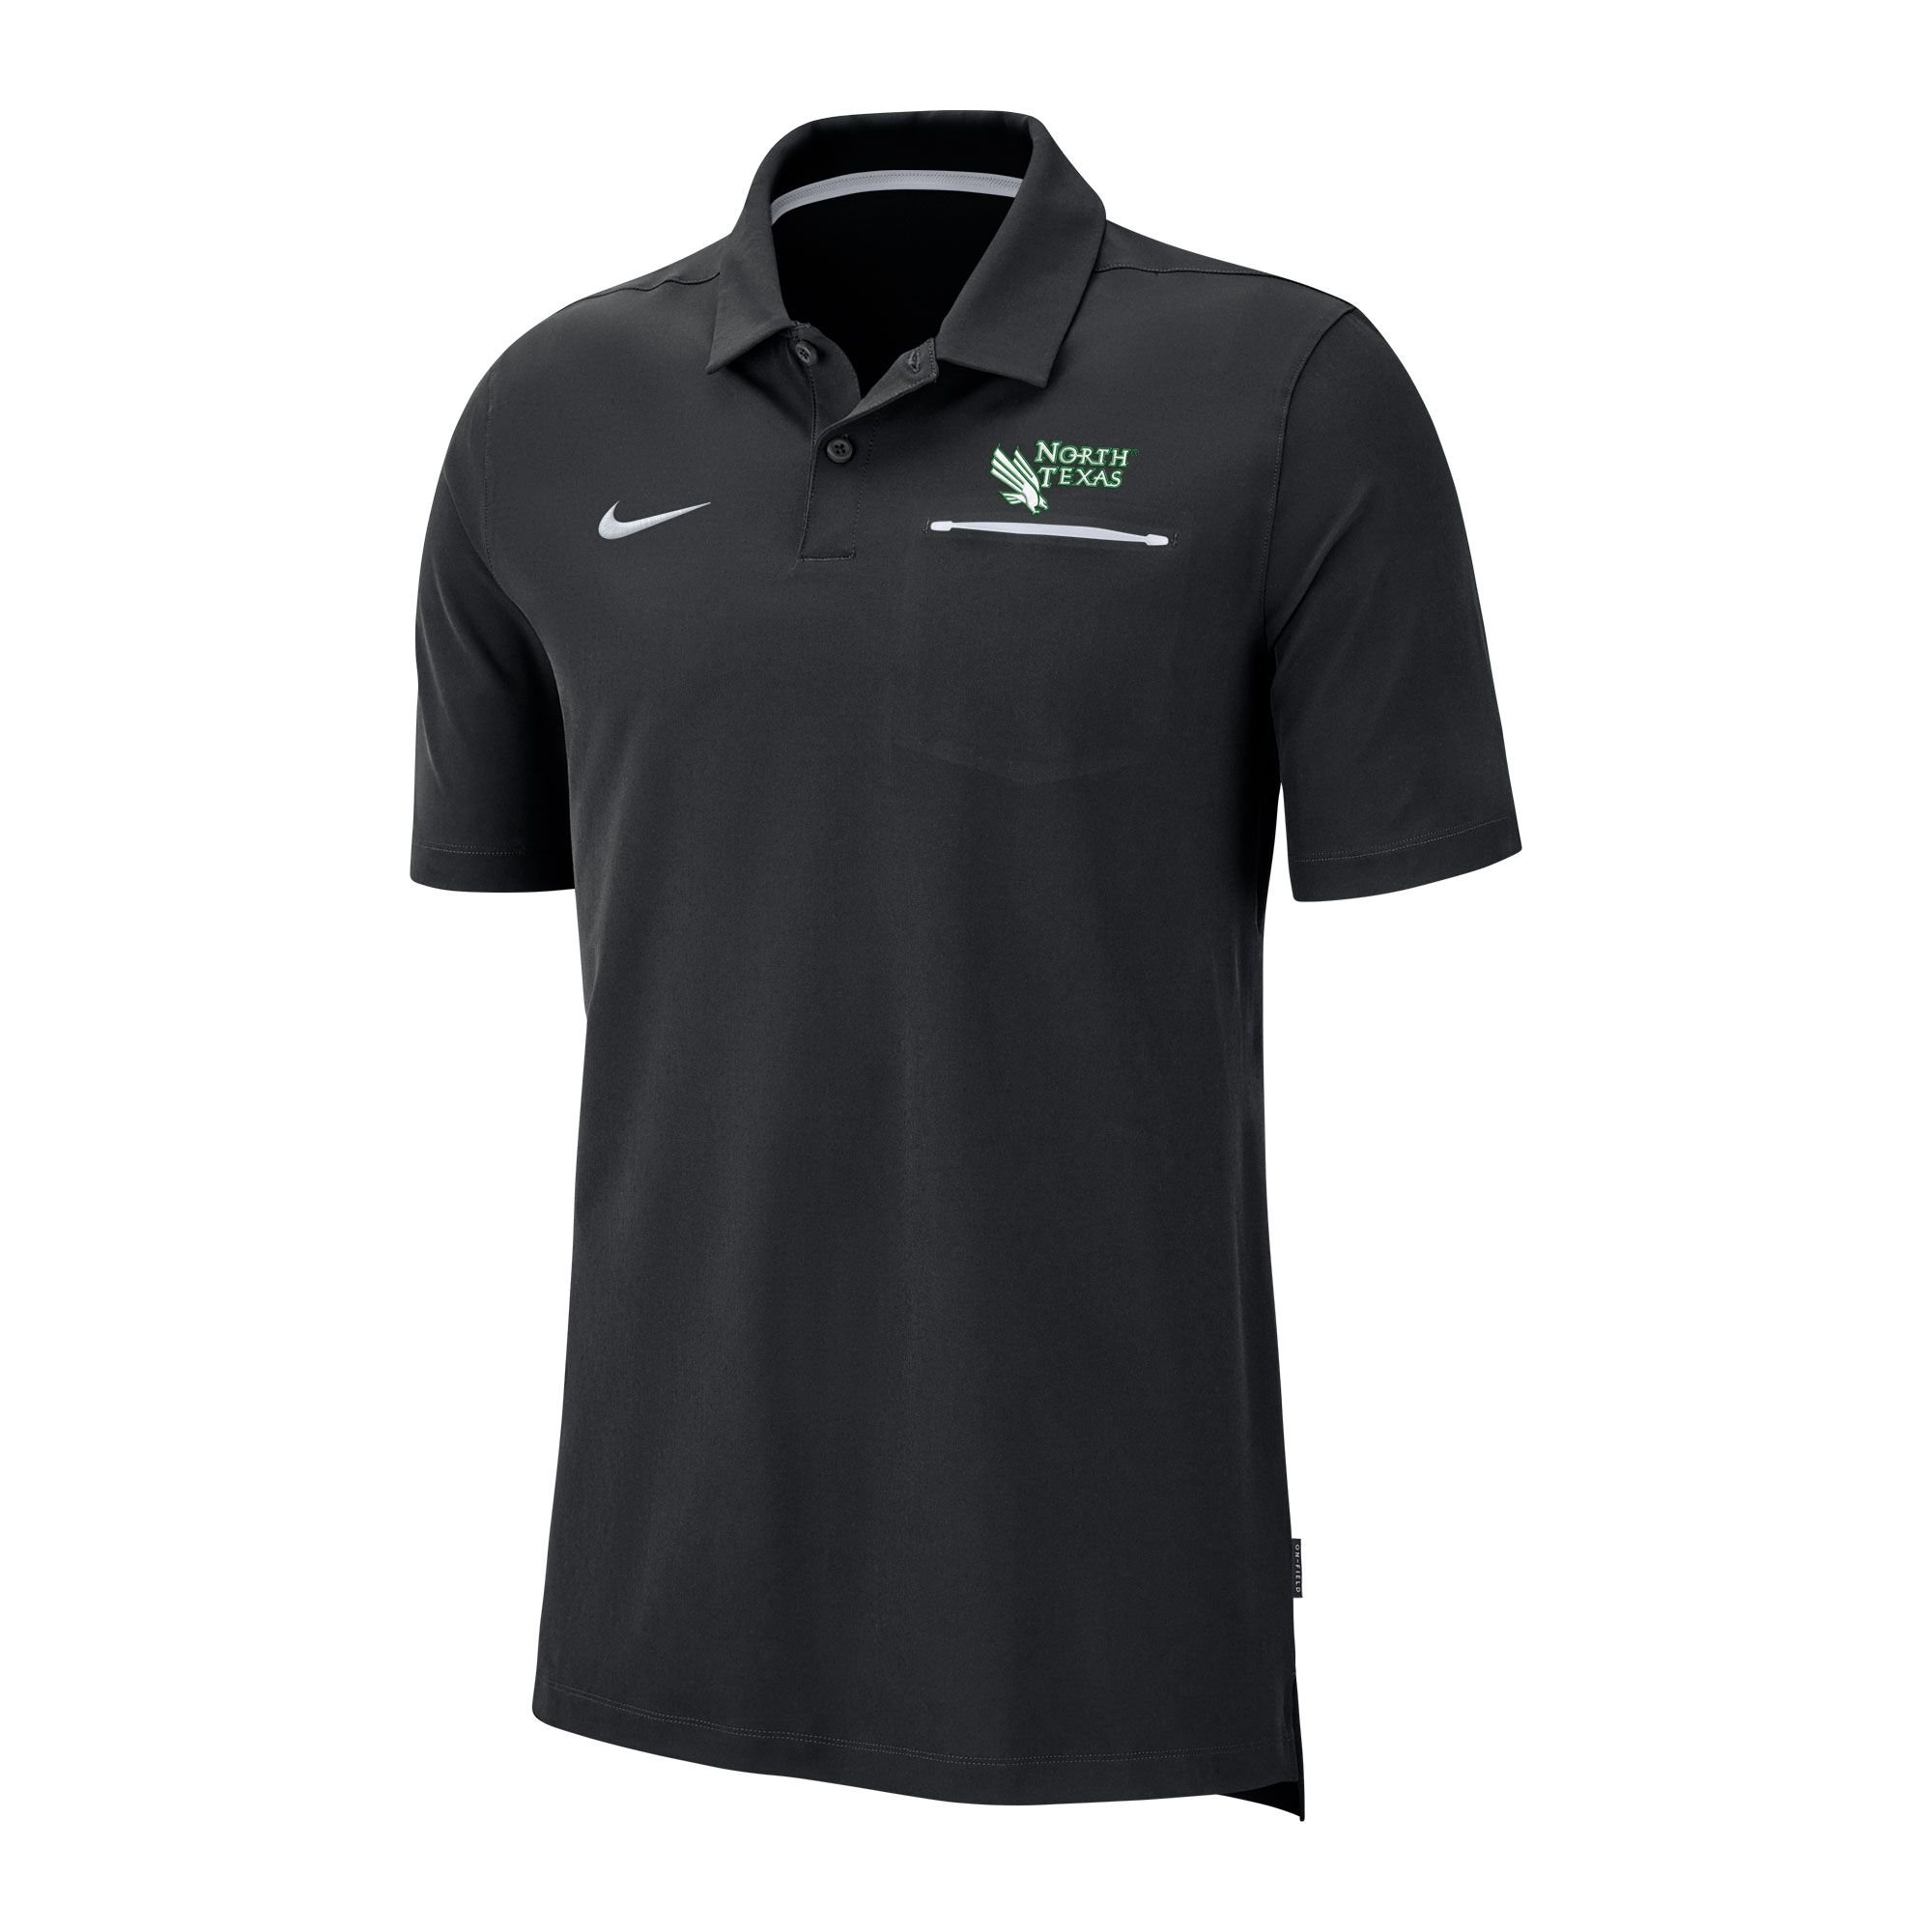 2019 SIDELINE ELITE COACH POLO